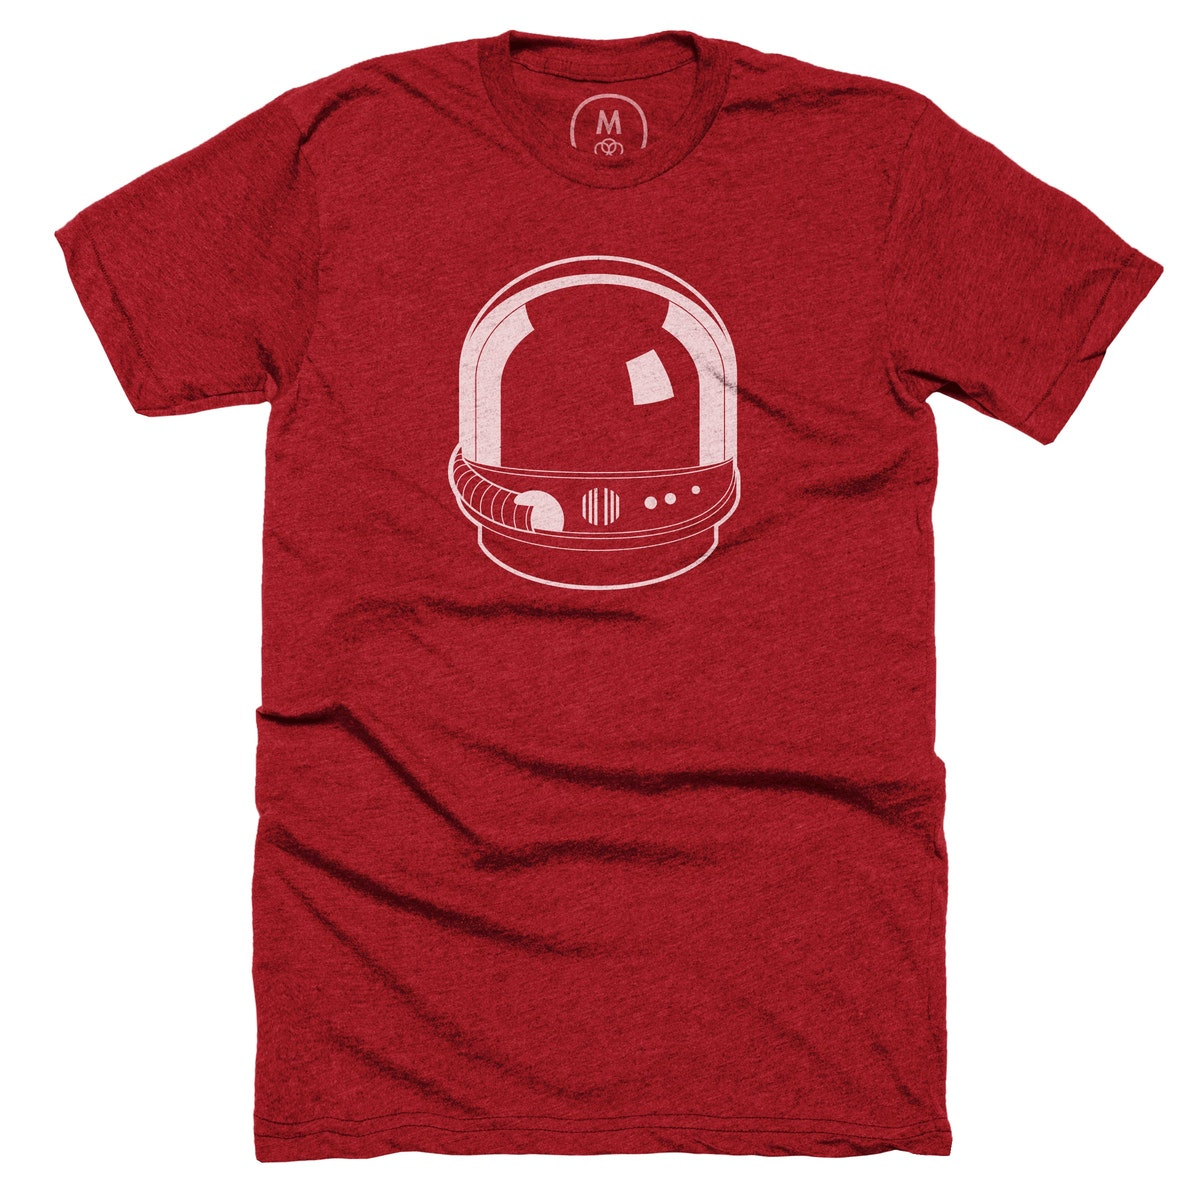 Cotton Bureau – Future Friendly (Red) by Brad Frost